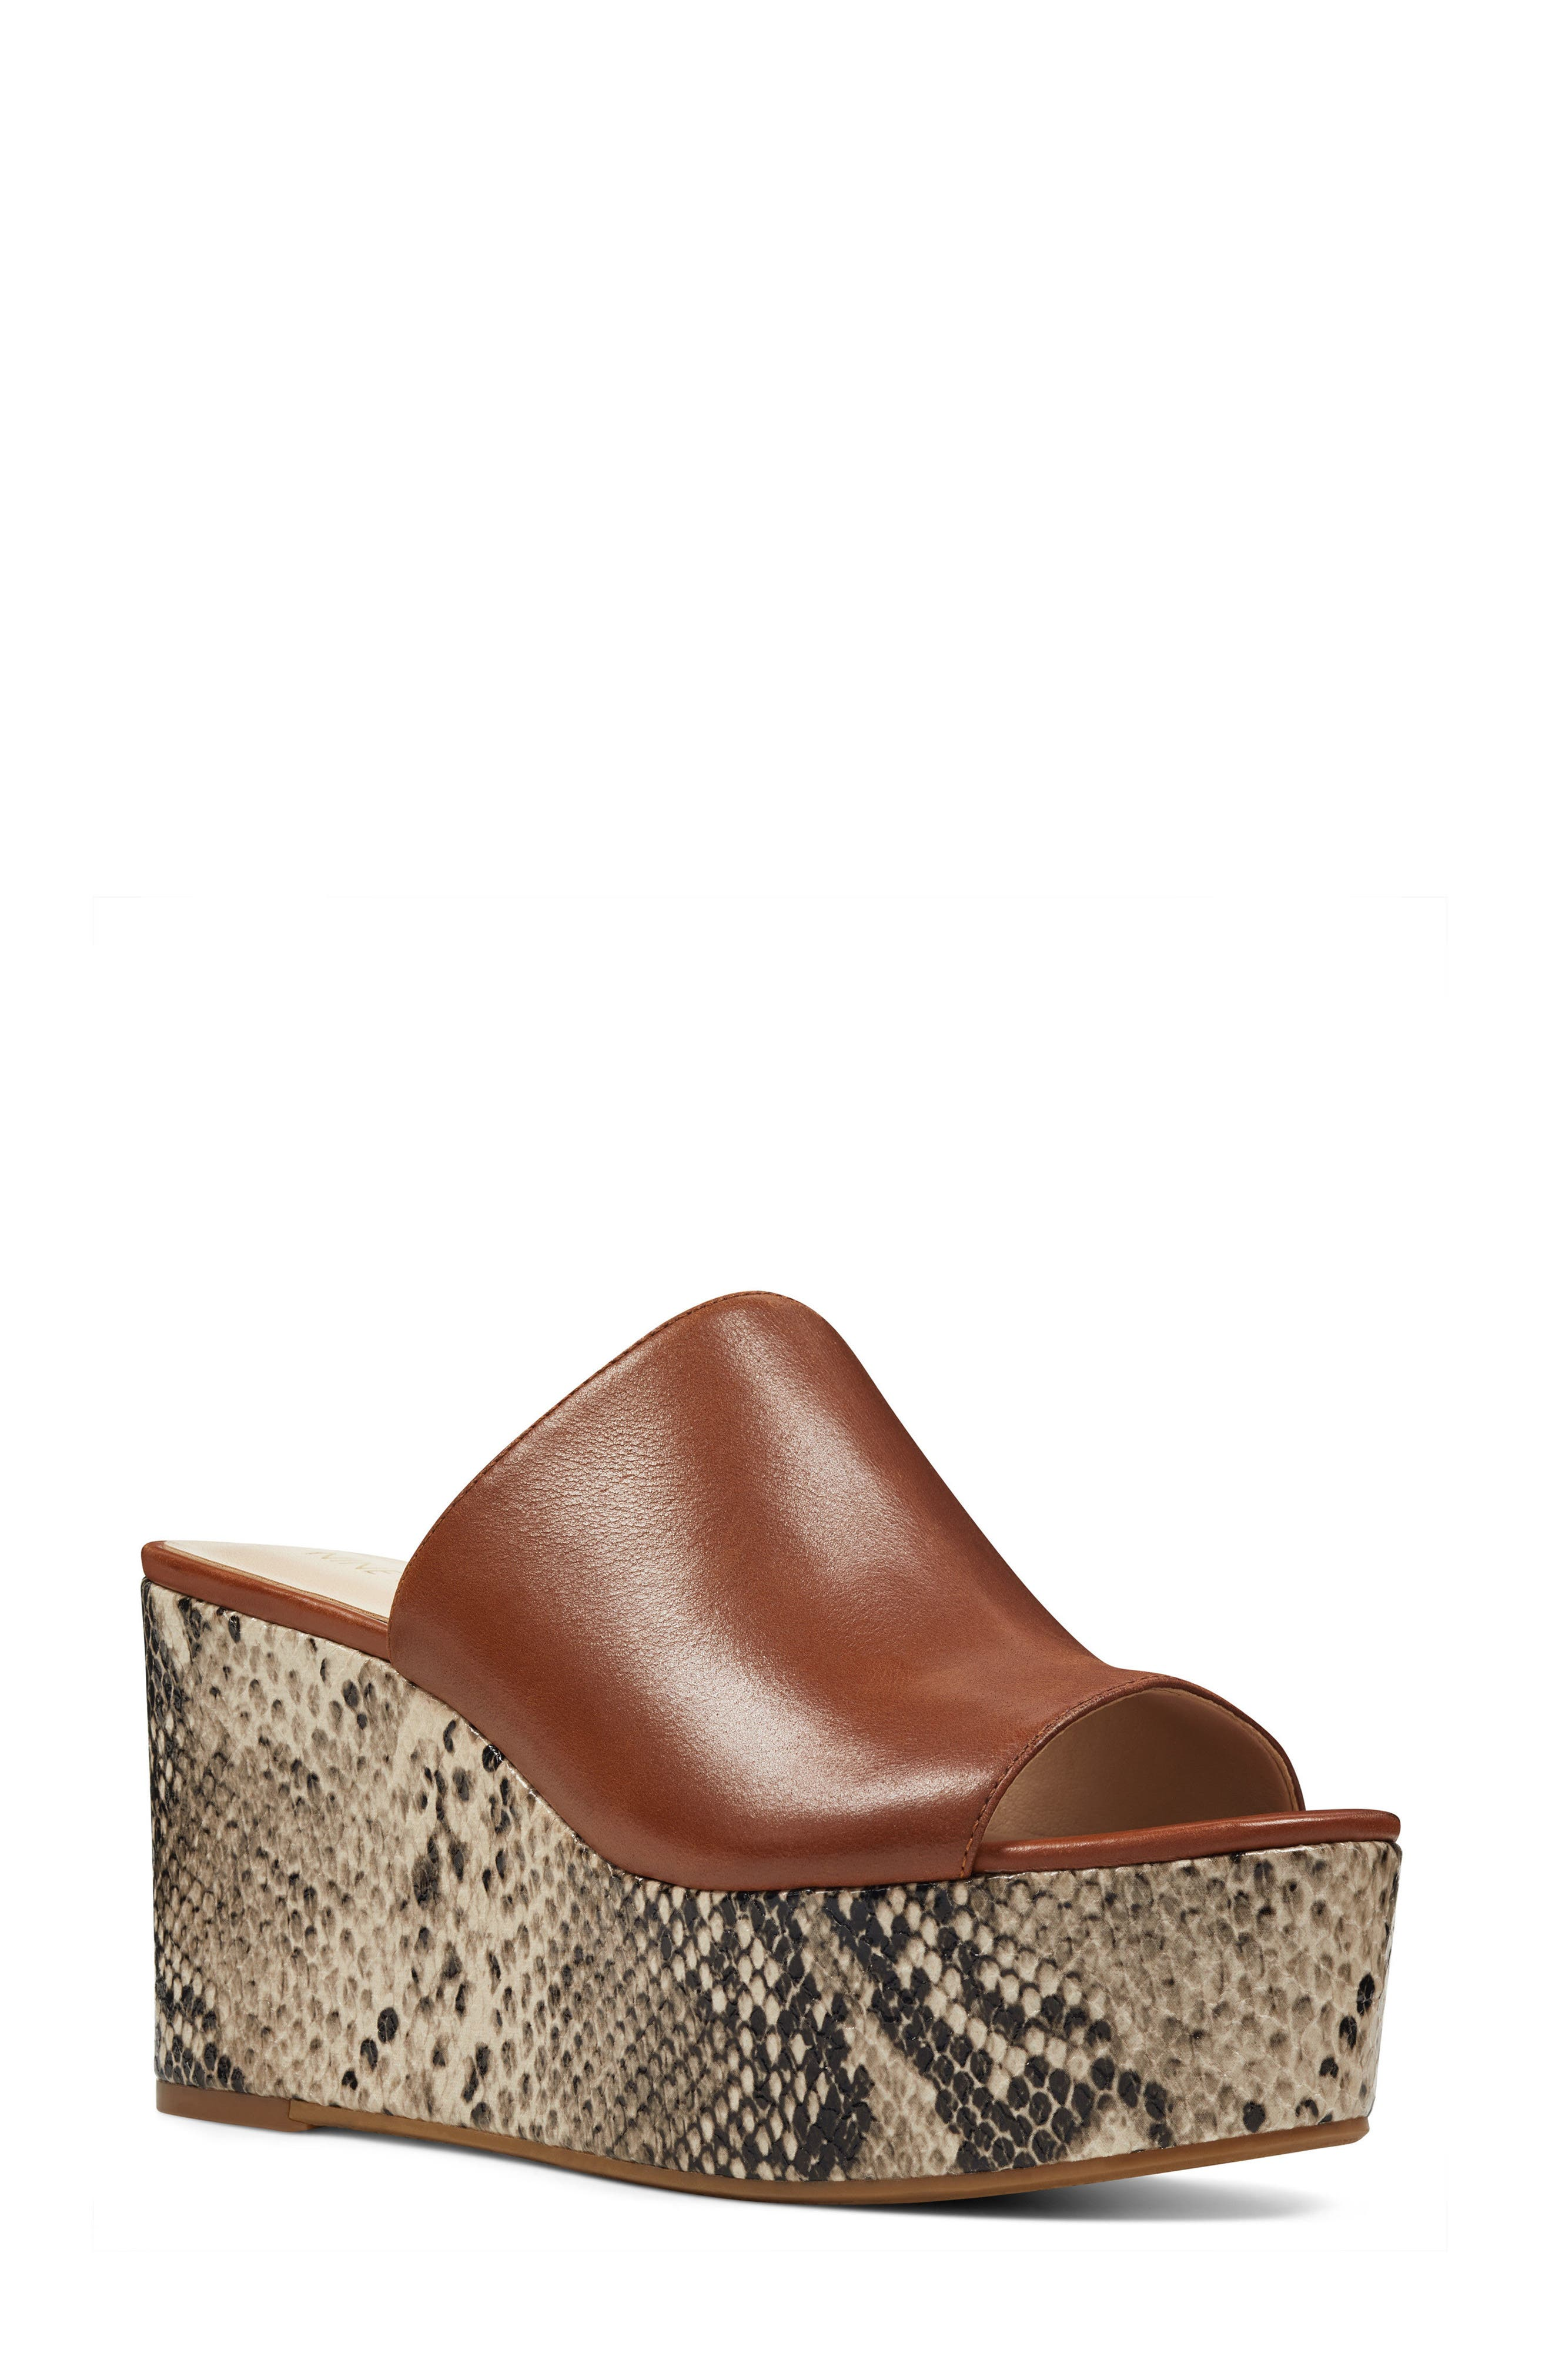 Nine West Kelsawn Platform Sandal (Women)